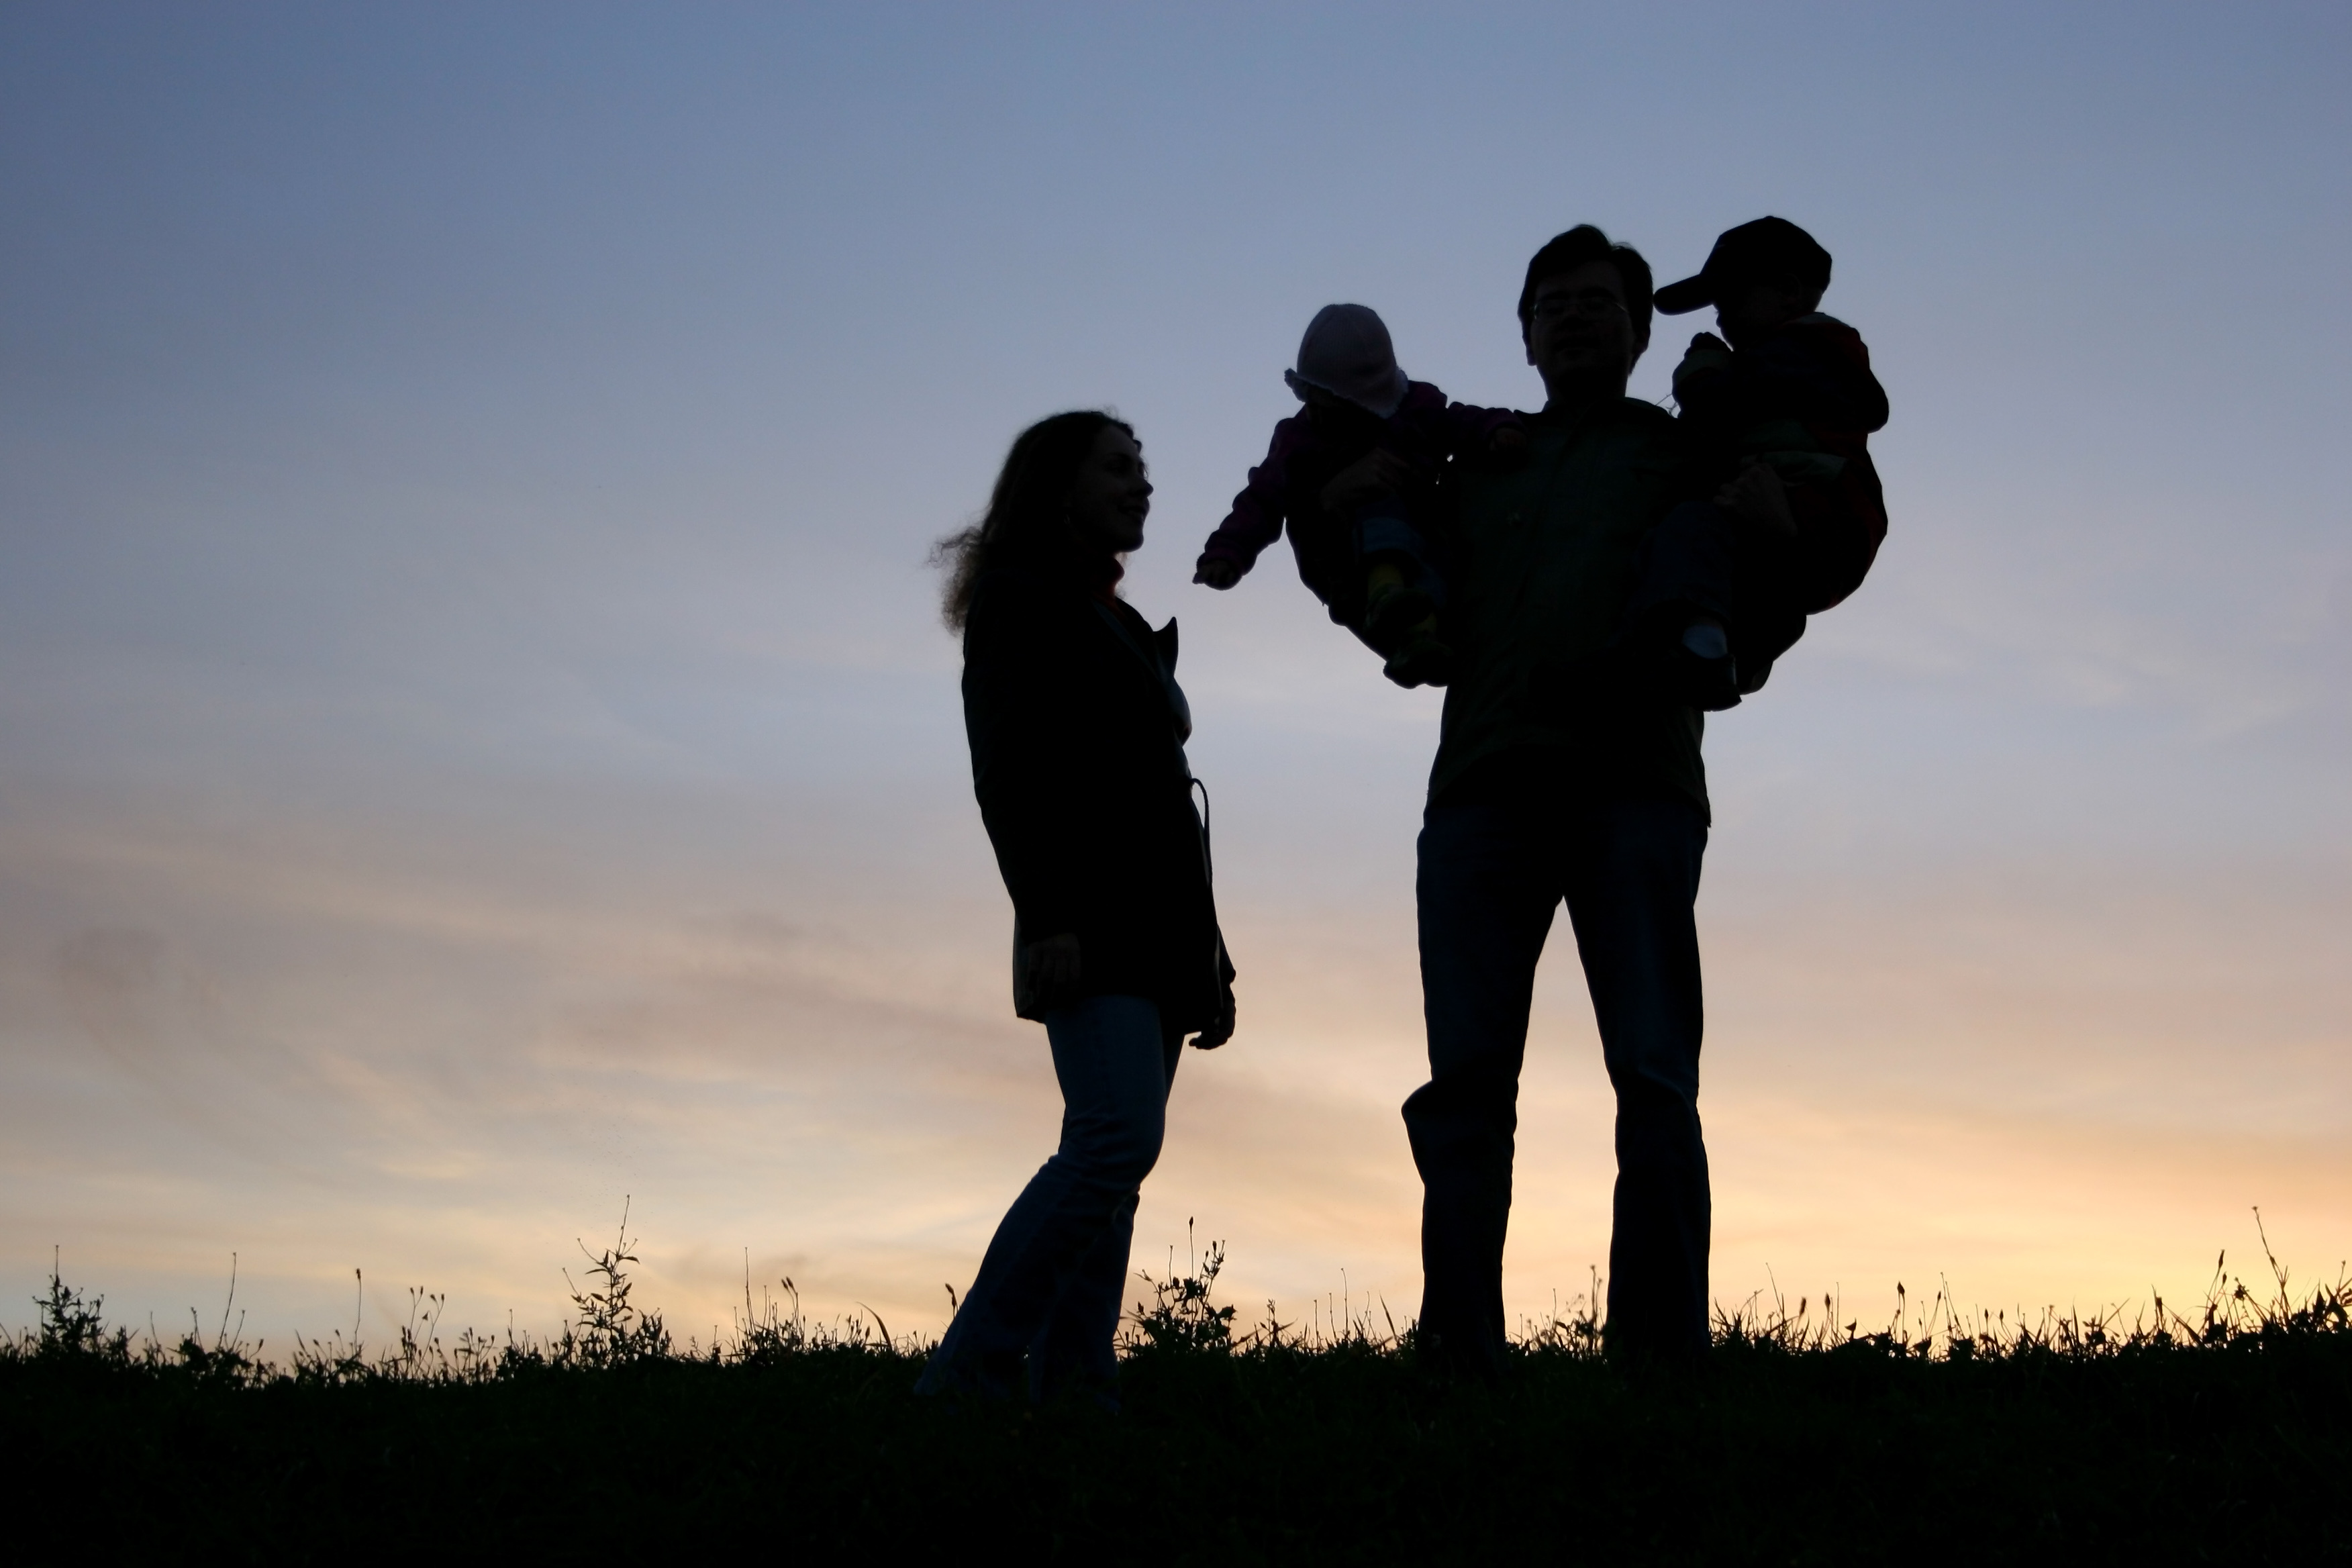 family with children on hands, sunset sky